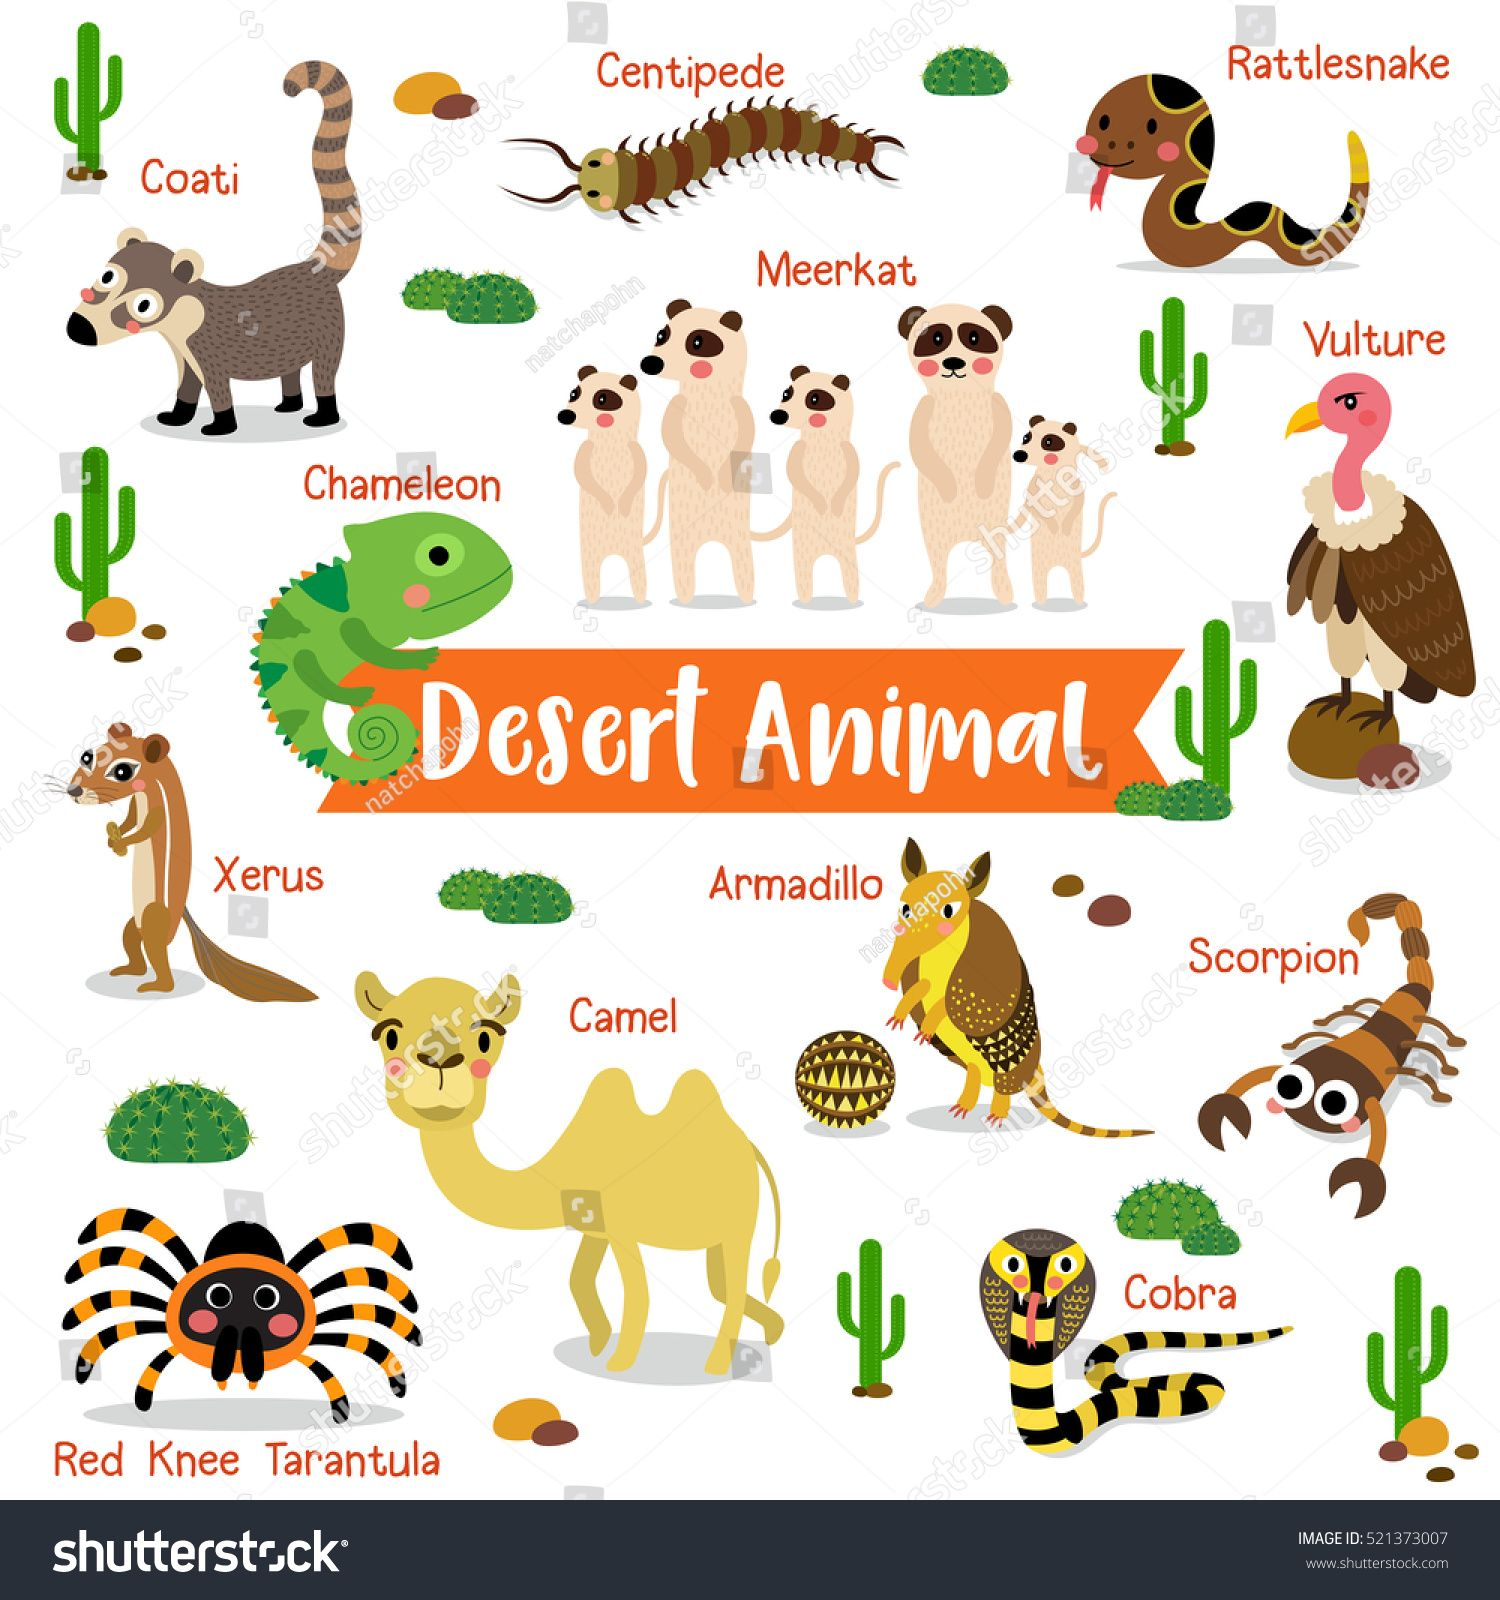 Desert Creature Cartoon On White Background Stock Vector Royalty Free 521373007 Desert Animals Animal Icon Design Cartoon Animals